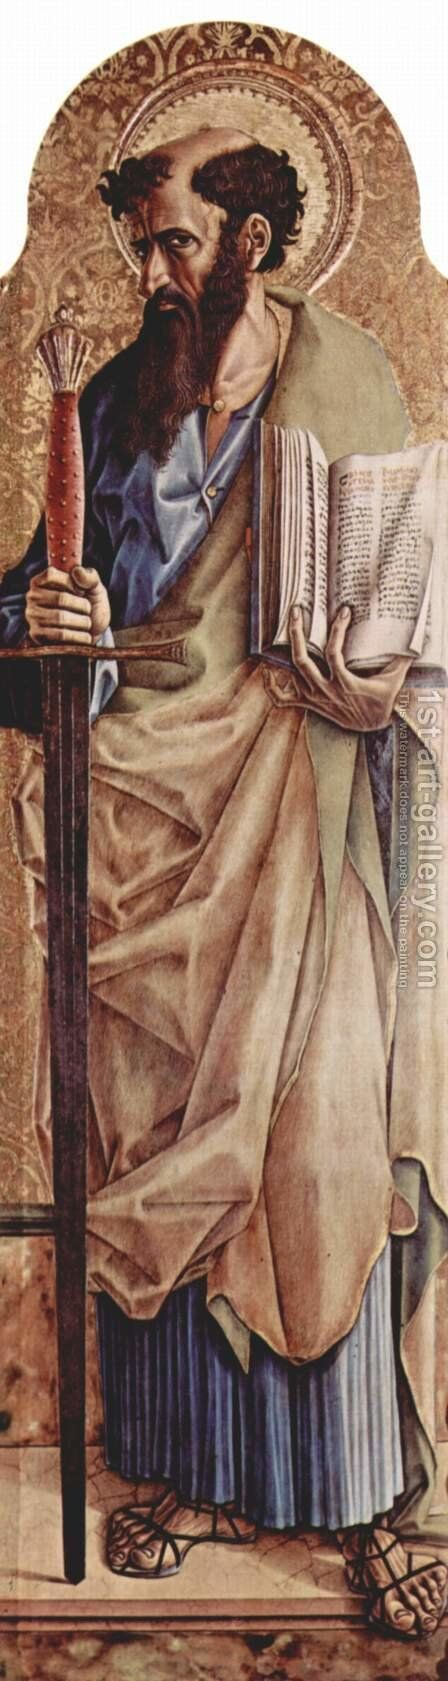 Main altar of the Cathedral of Ascoli, polyptych, on the right panel of St. Paul by Carlo Crivelli - Reproduction Oil Painting